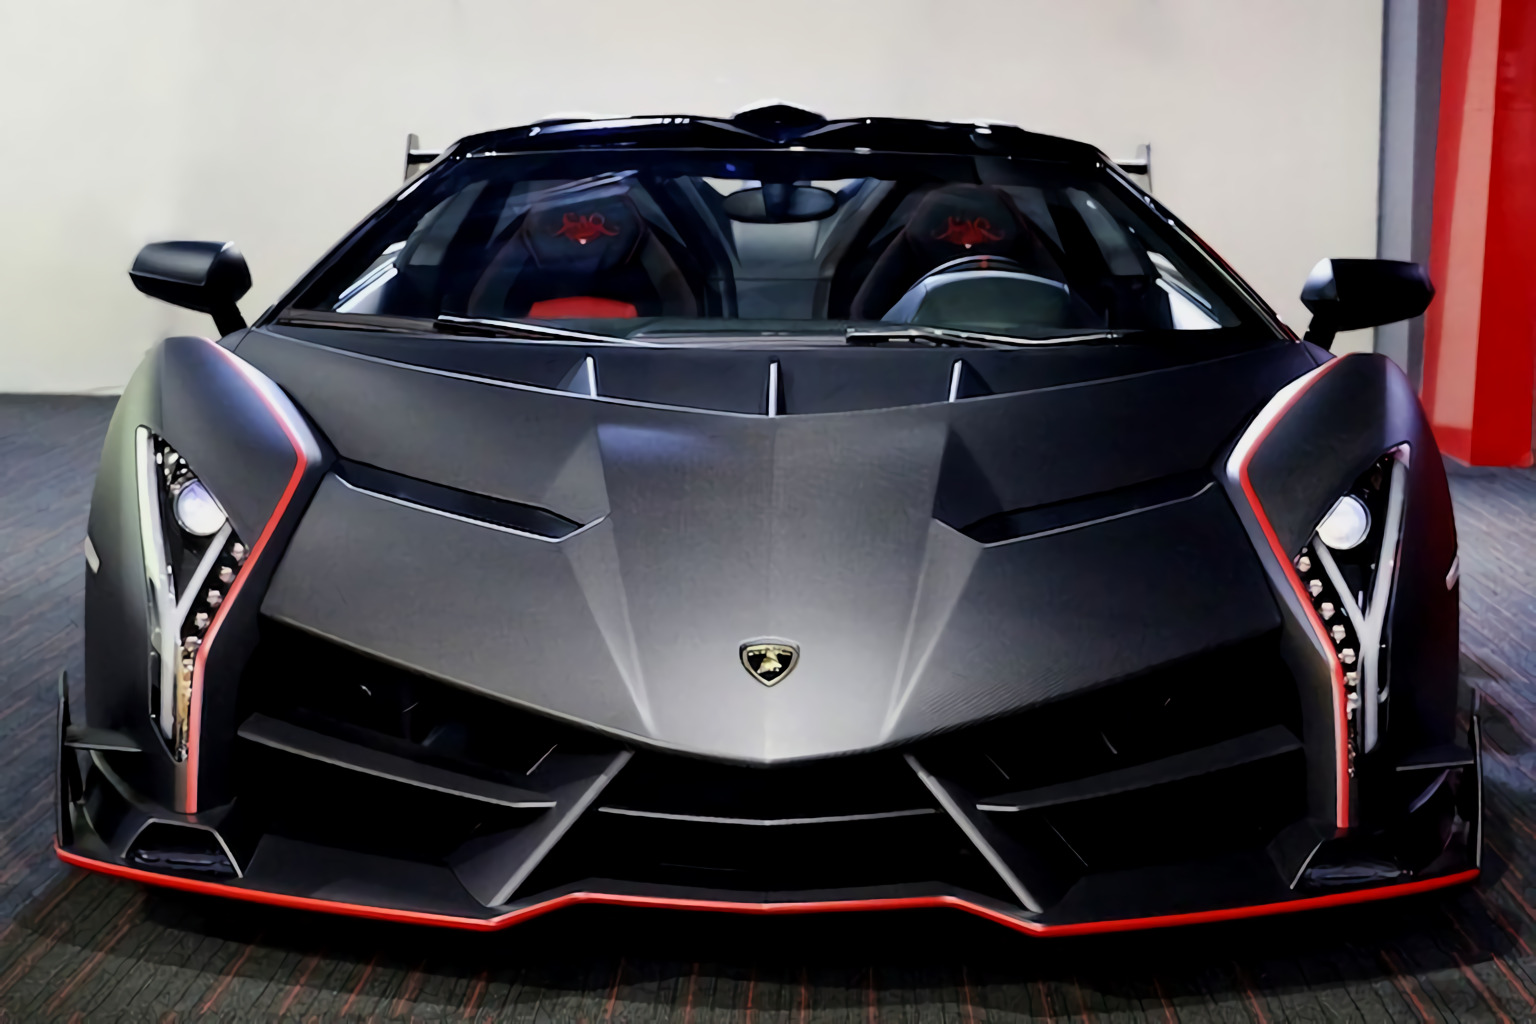 Veneno, Reventon, Miura, and others: The 12 most expensive Lamborghinis you must see ()